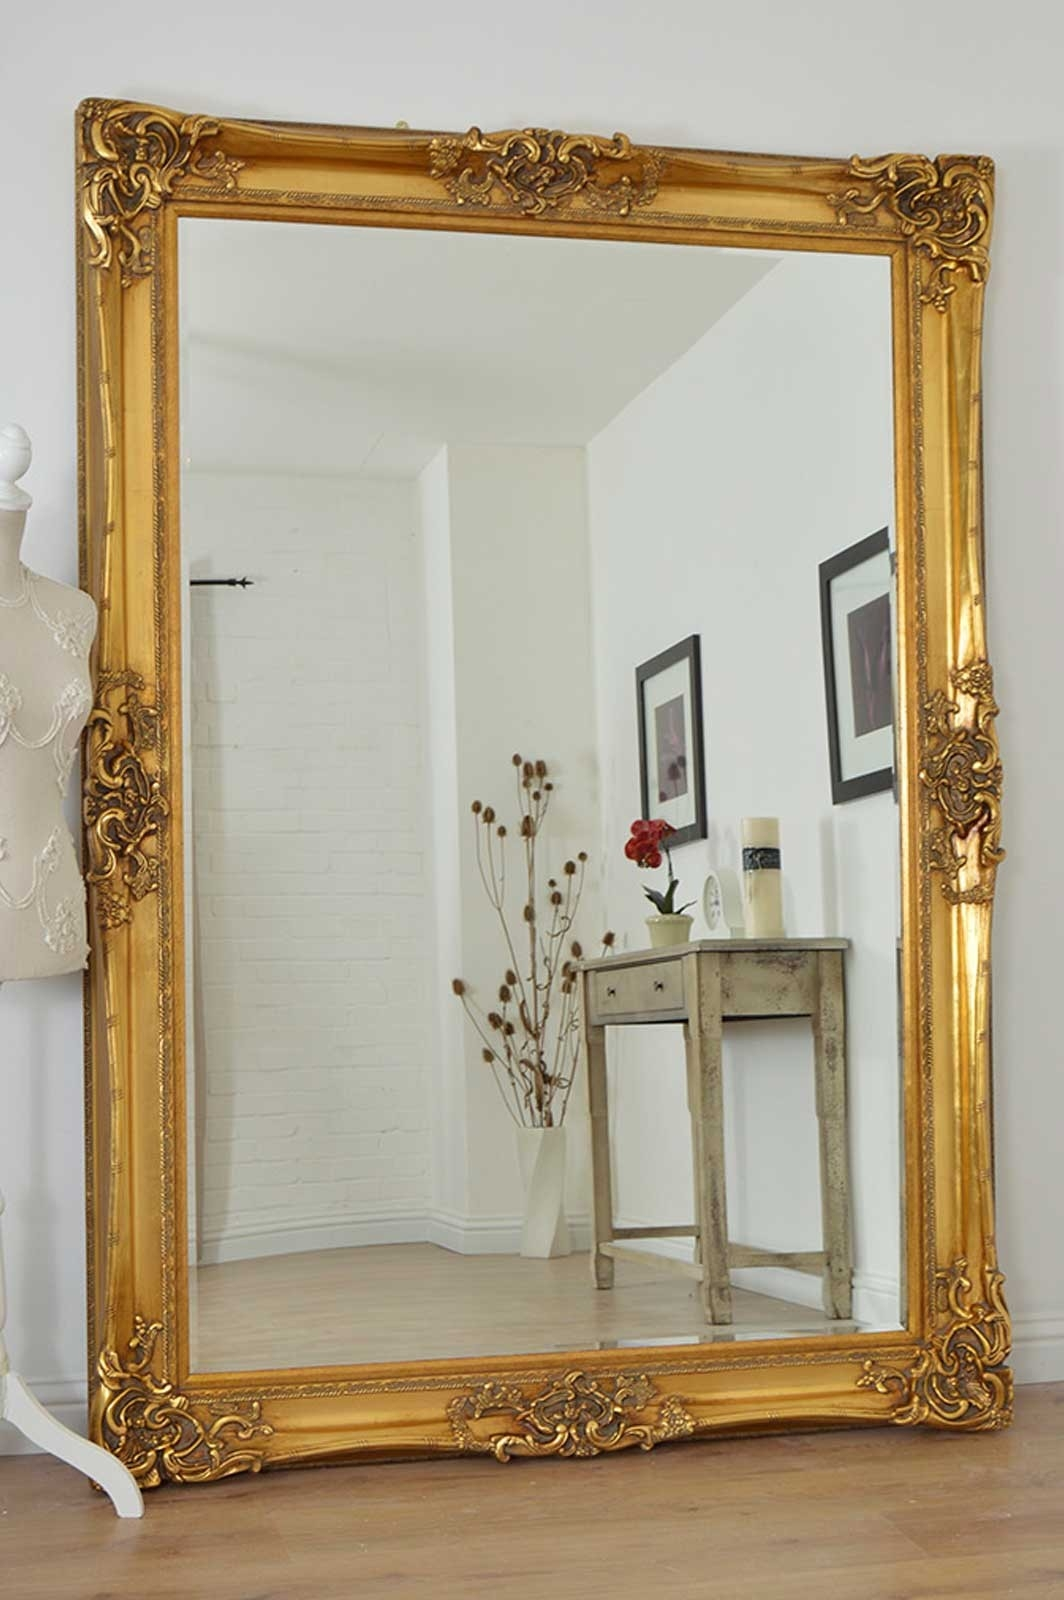 Large Gold Very Ornate Antique Design Wall Mirror 7ft X 5ft 213cm Inside Large Ornate Silver Mirror (Image 7 of 15)